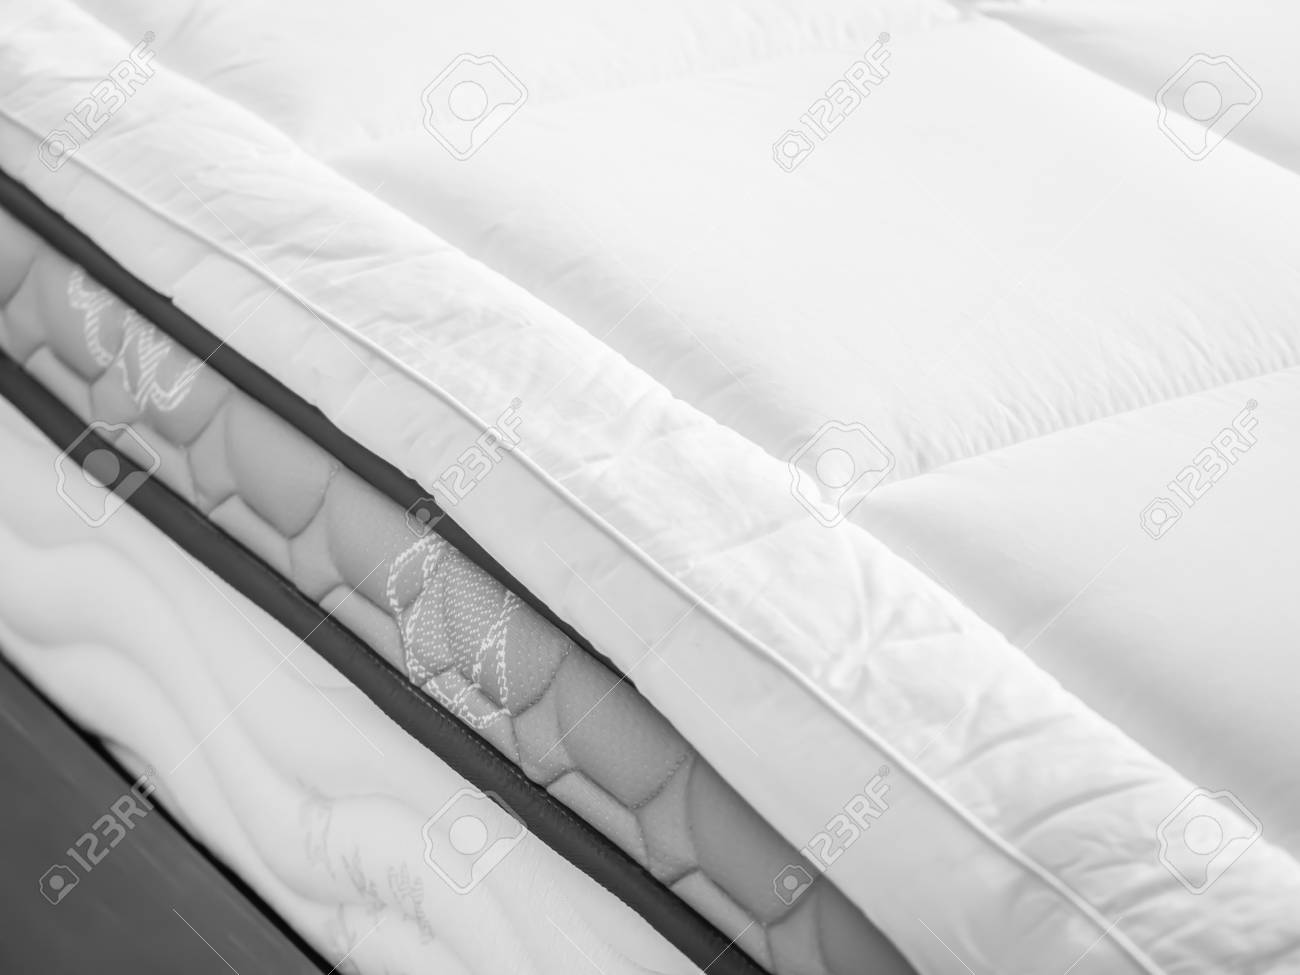 Bed topper on bed in bedroom - 92592890